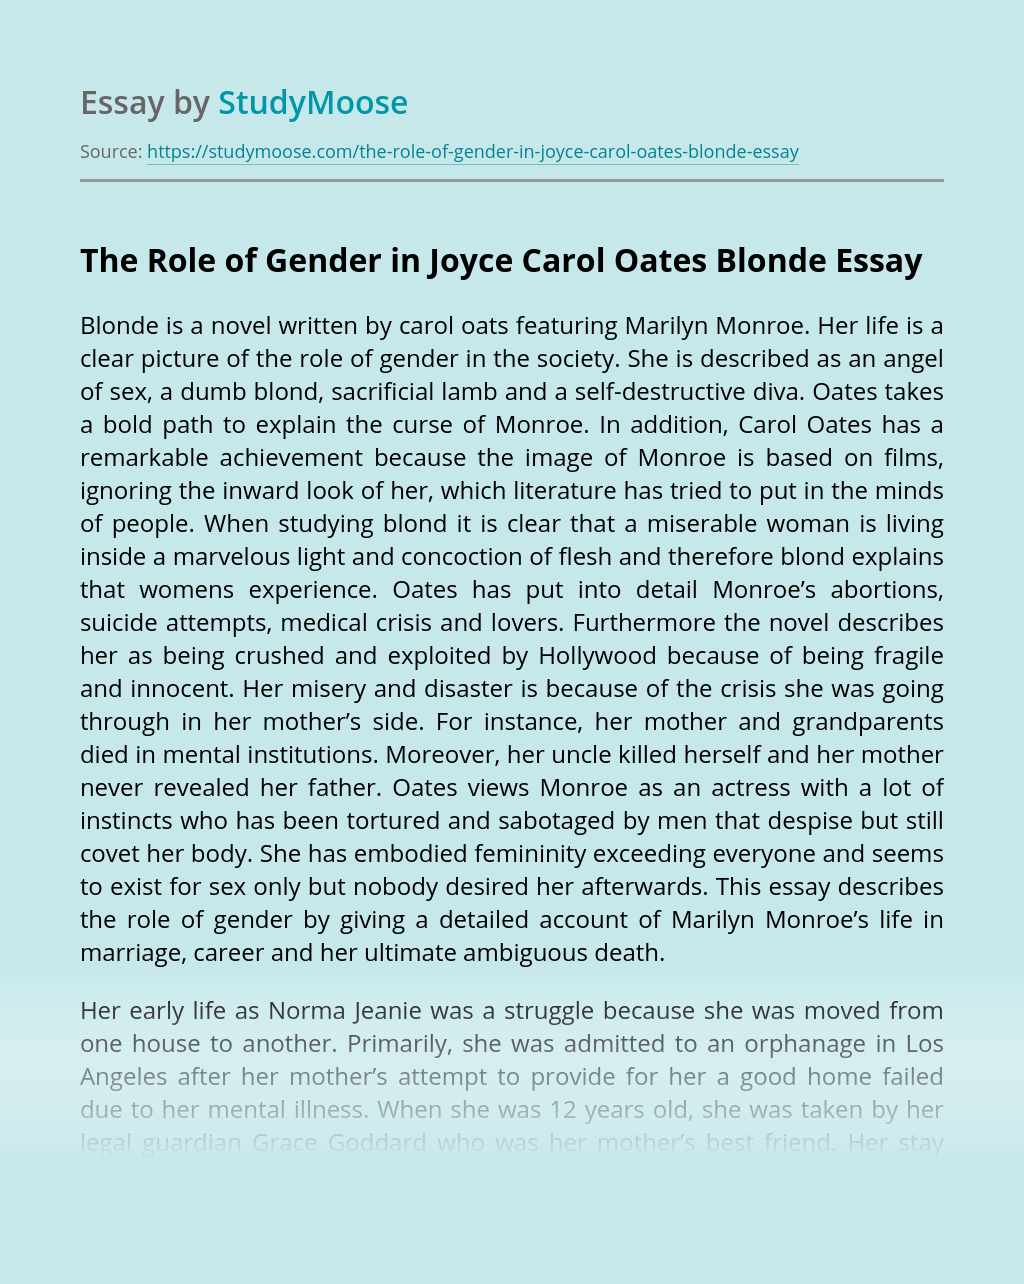 The Role of Gender in Joyce Carol Oates Blonde